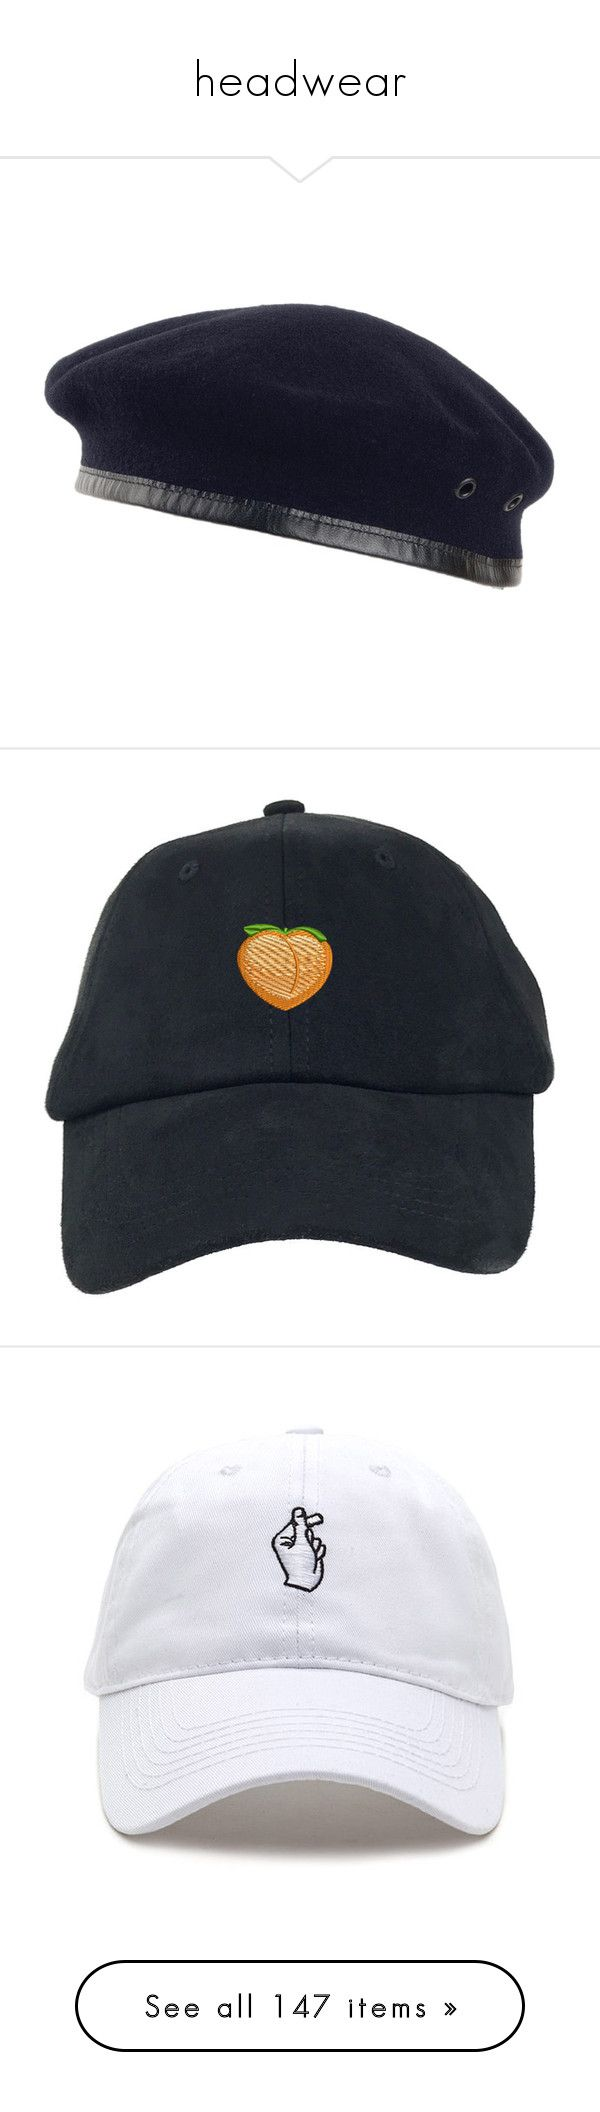 """""""headwear"""" by vheart-official ❤ liked on Polyvore featuring hats, accessories, beanies and hats, headwear, beret cap, navy blue cap, navy blue beret, military beret, navy hat and baseball cap hats"""